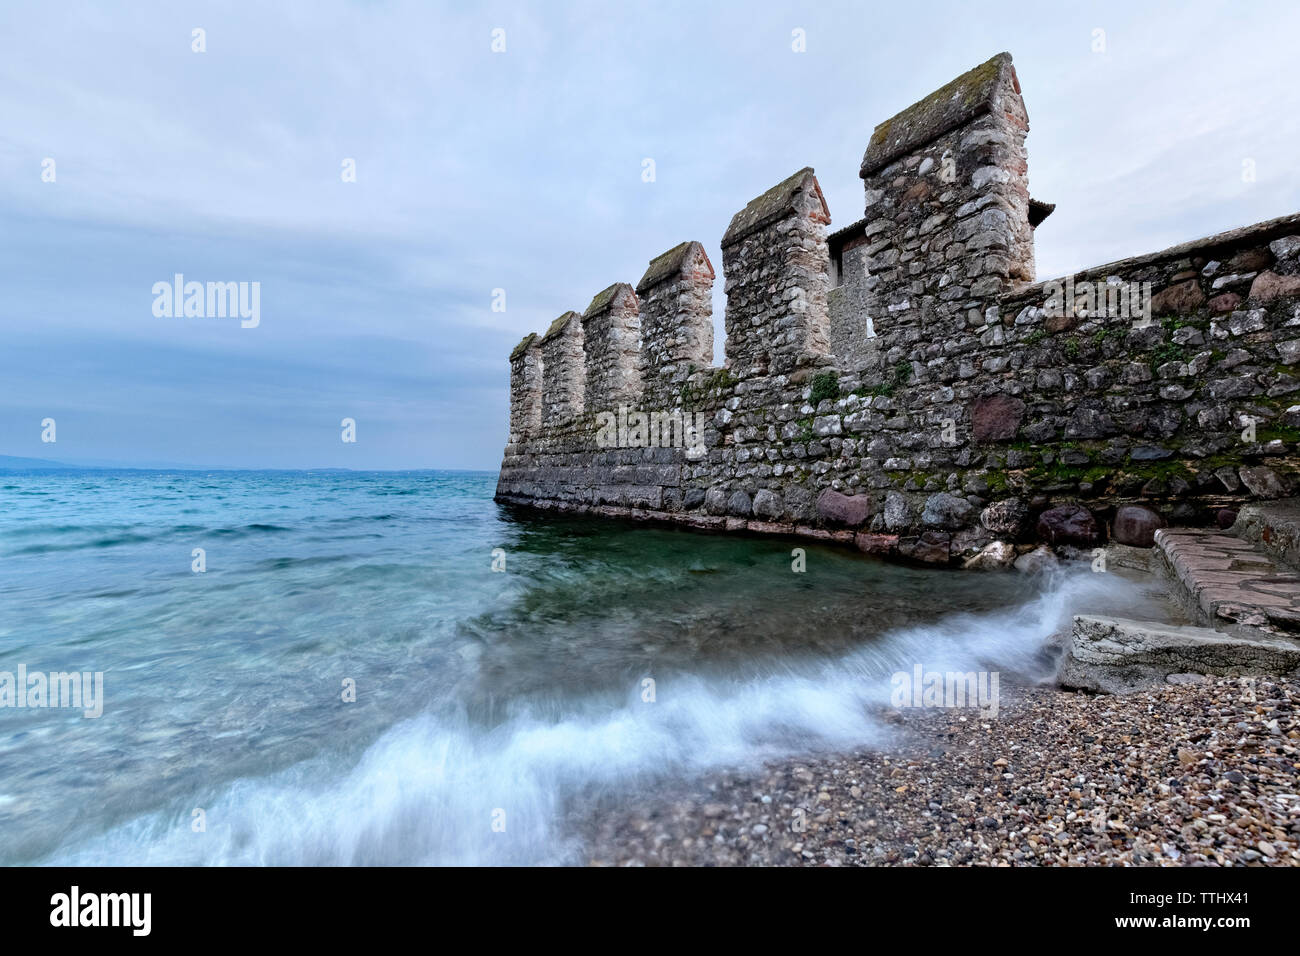 Walls of the Scaligero castle overlook the Lake Garda. Sirmione, Lombardy, Italy, Europe. Stock Photo